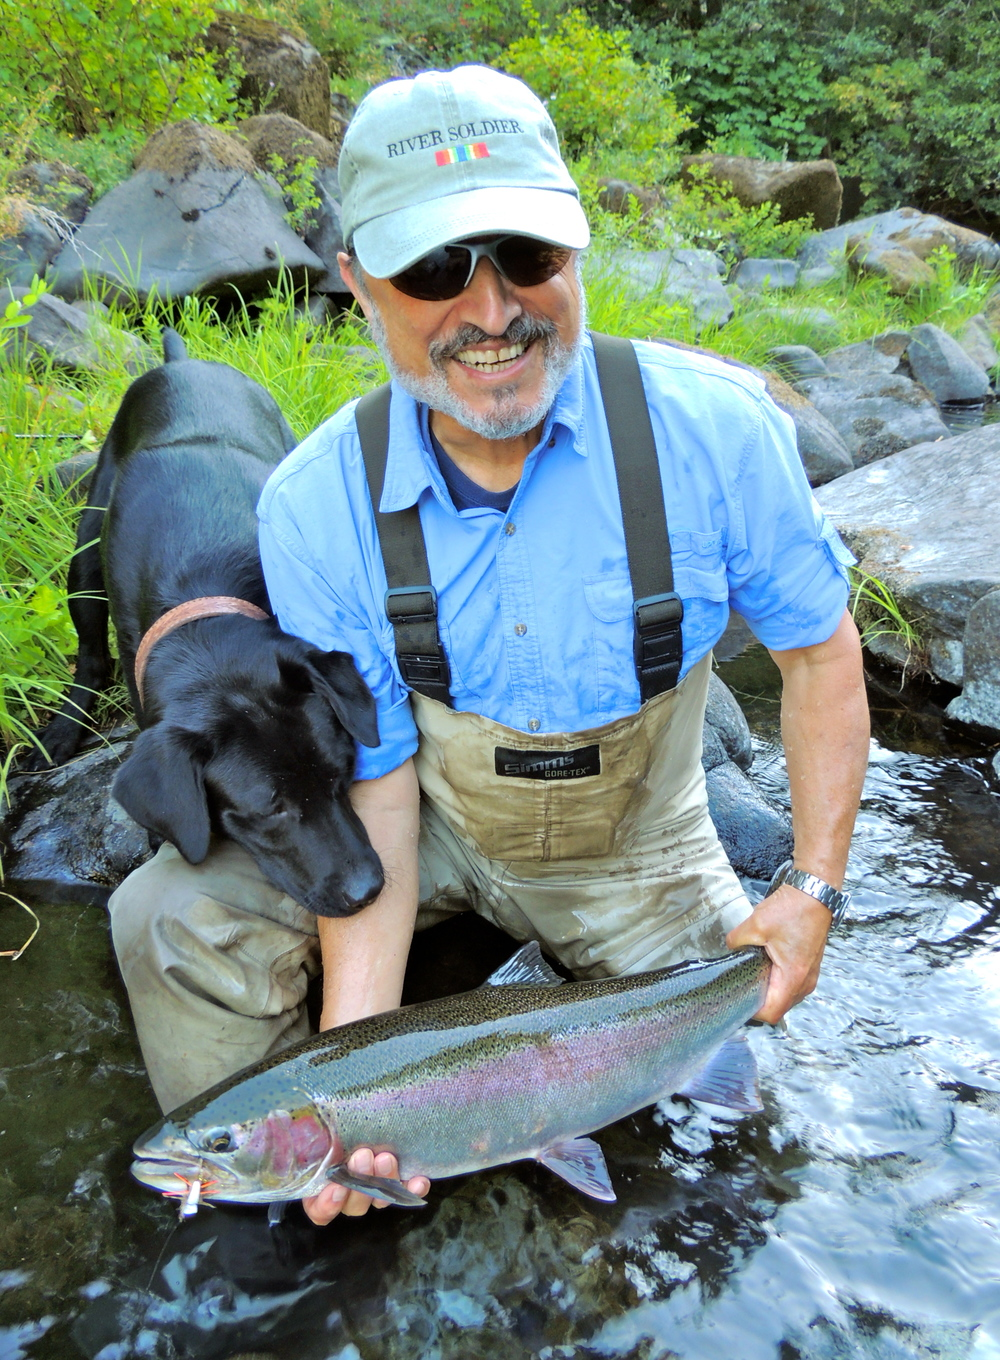 Henry Carlile with a nice one, this was the first steelhead Blue paid attention too. He's starting to understand what we're doing out there. No better to break him in than a lab lover too.